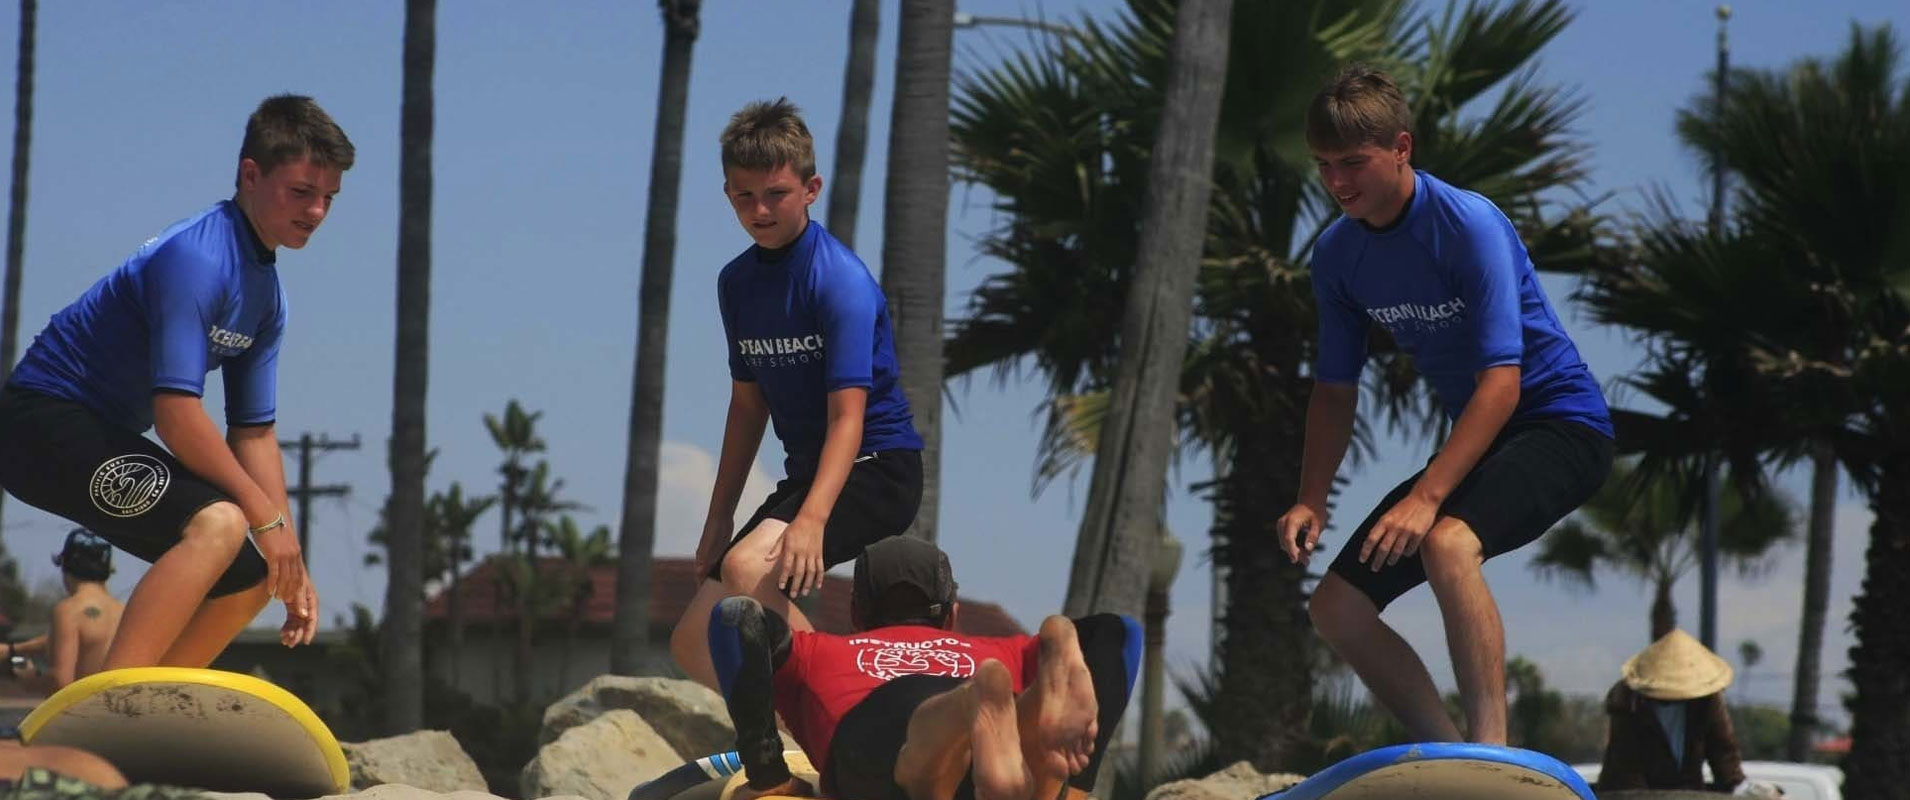 Children learning to surf in San Diego